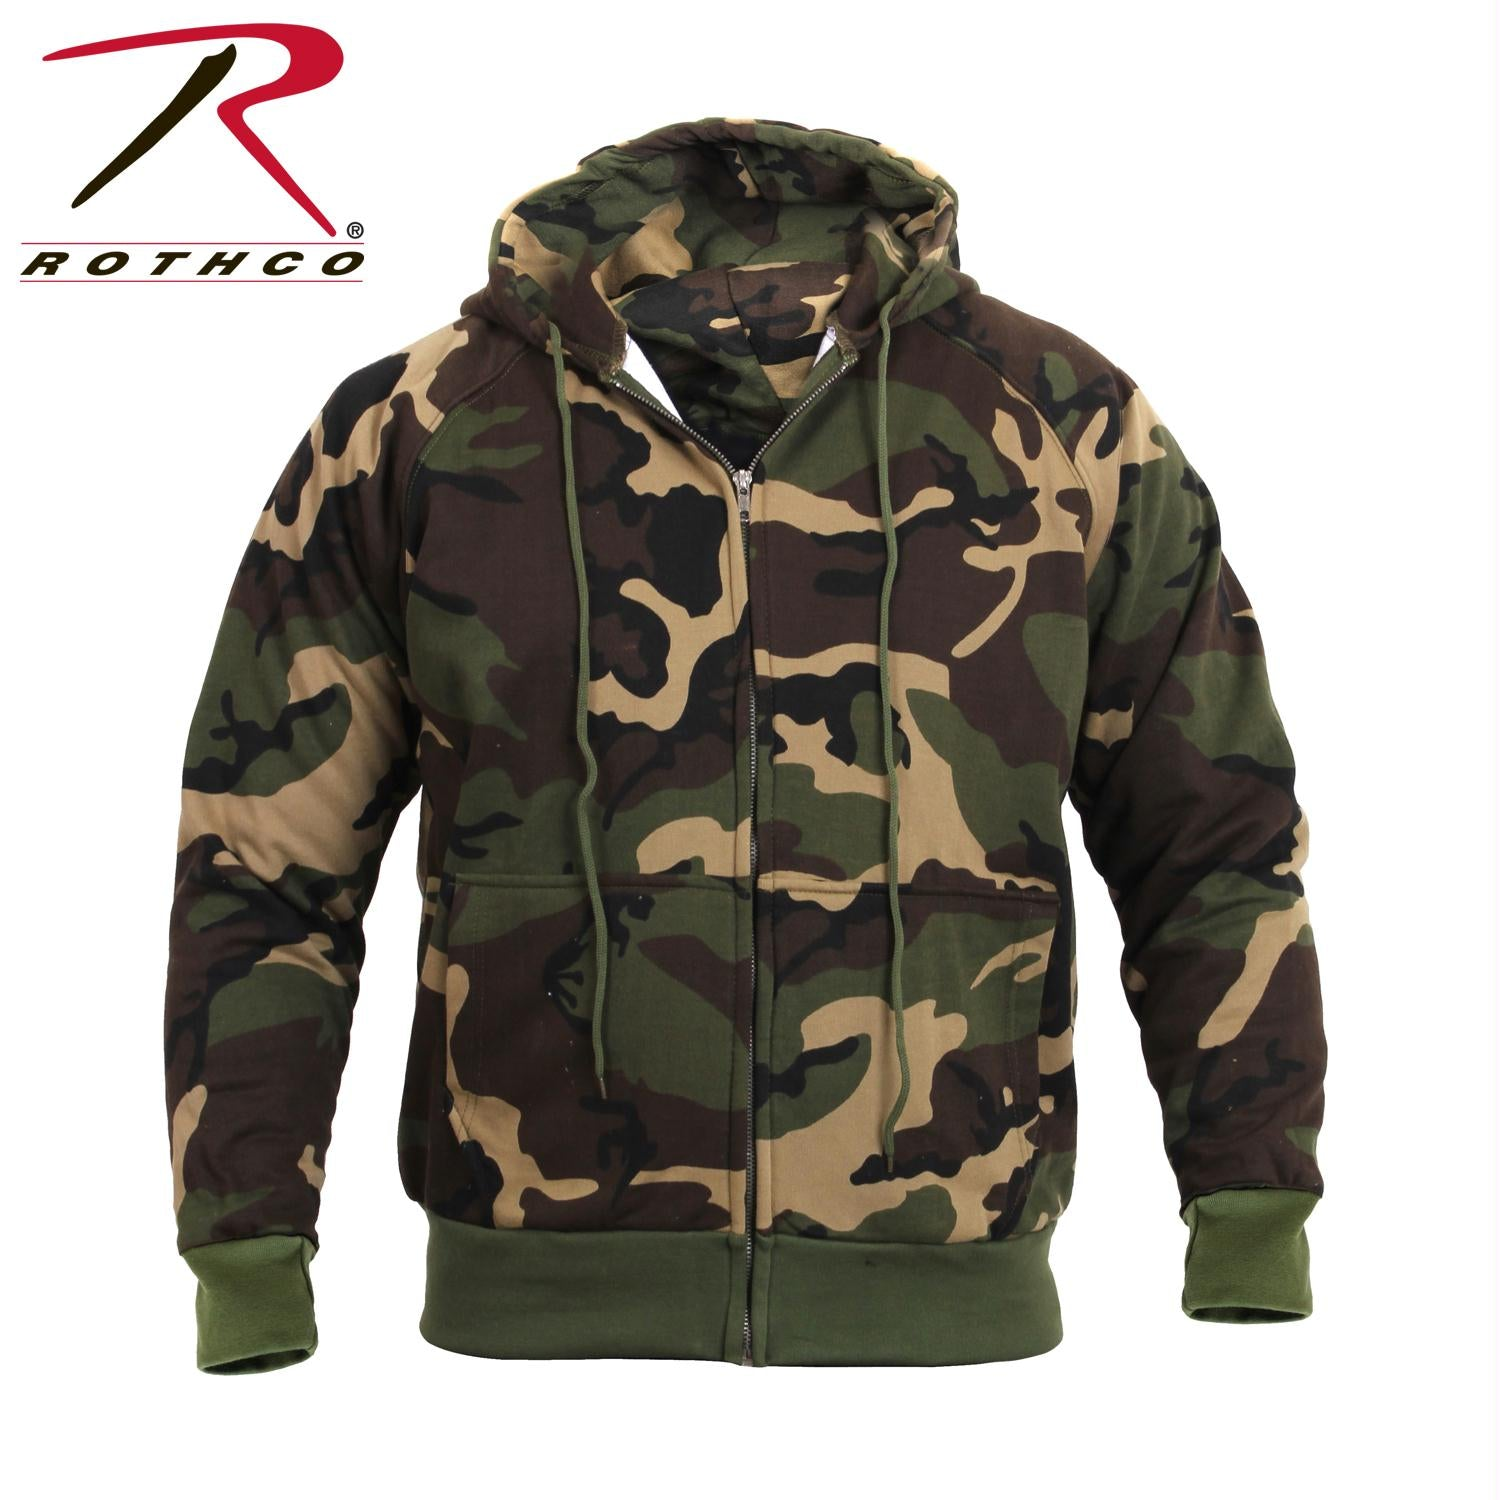 Rothco Thermal Lined Hooded Sweatshirt - Woodland Camo / M